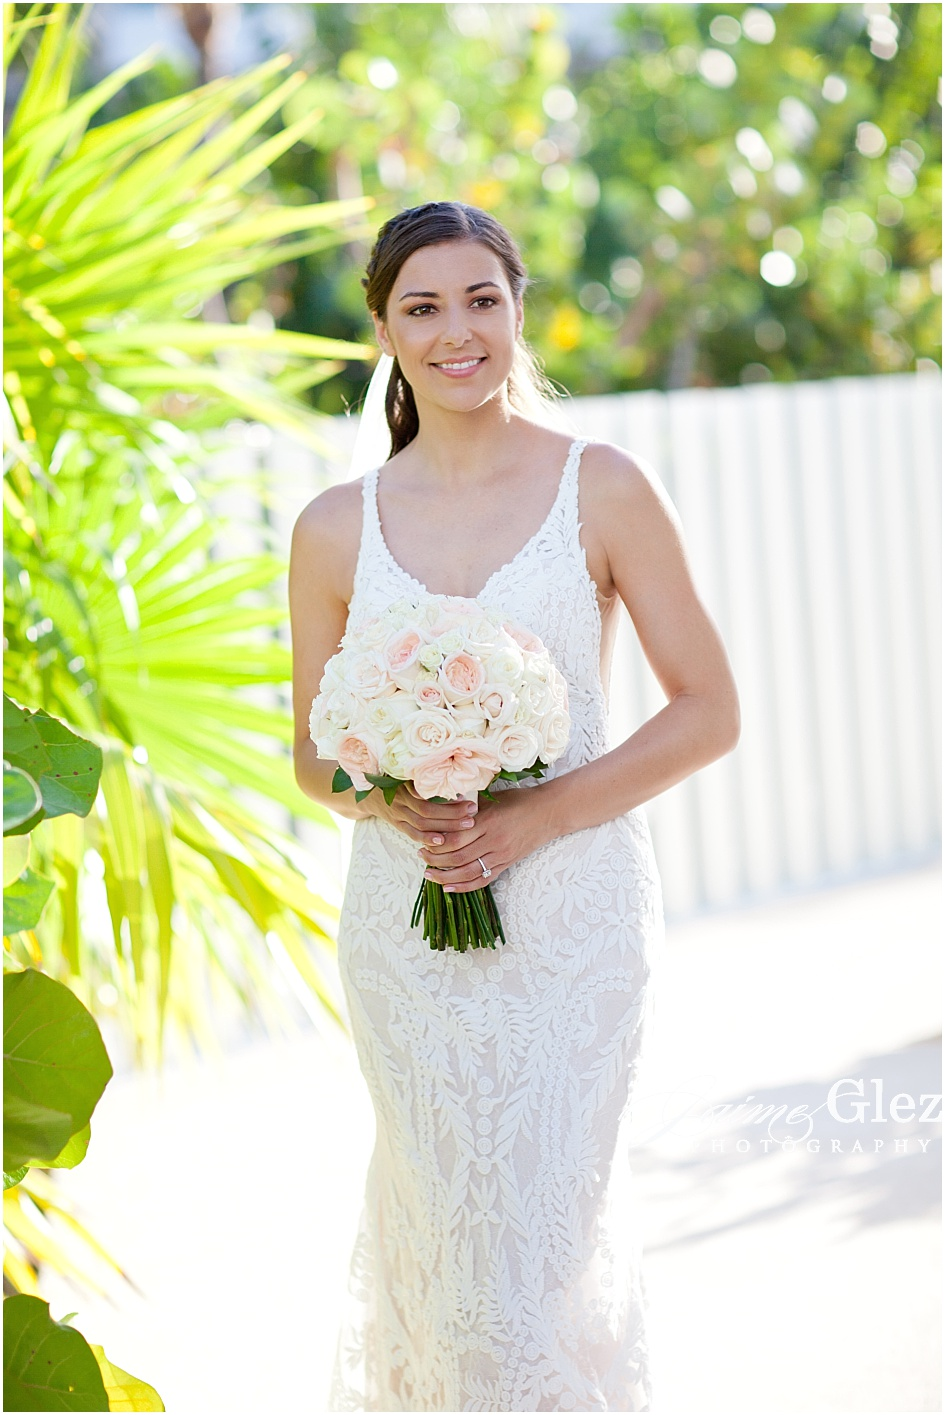 How stunning is Amber in that wedding gown?